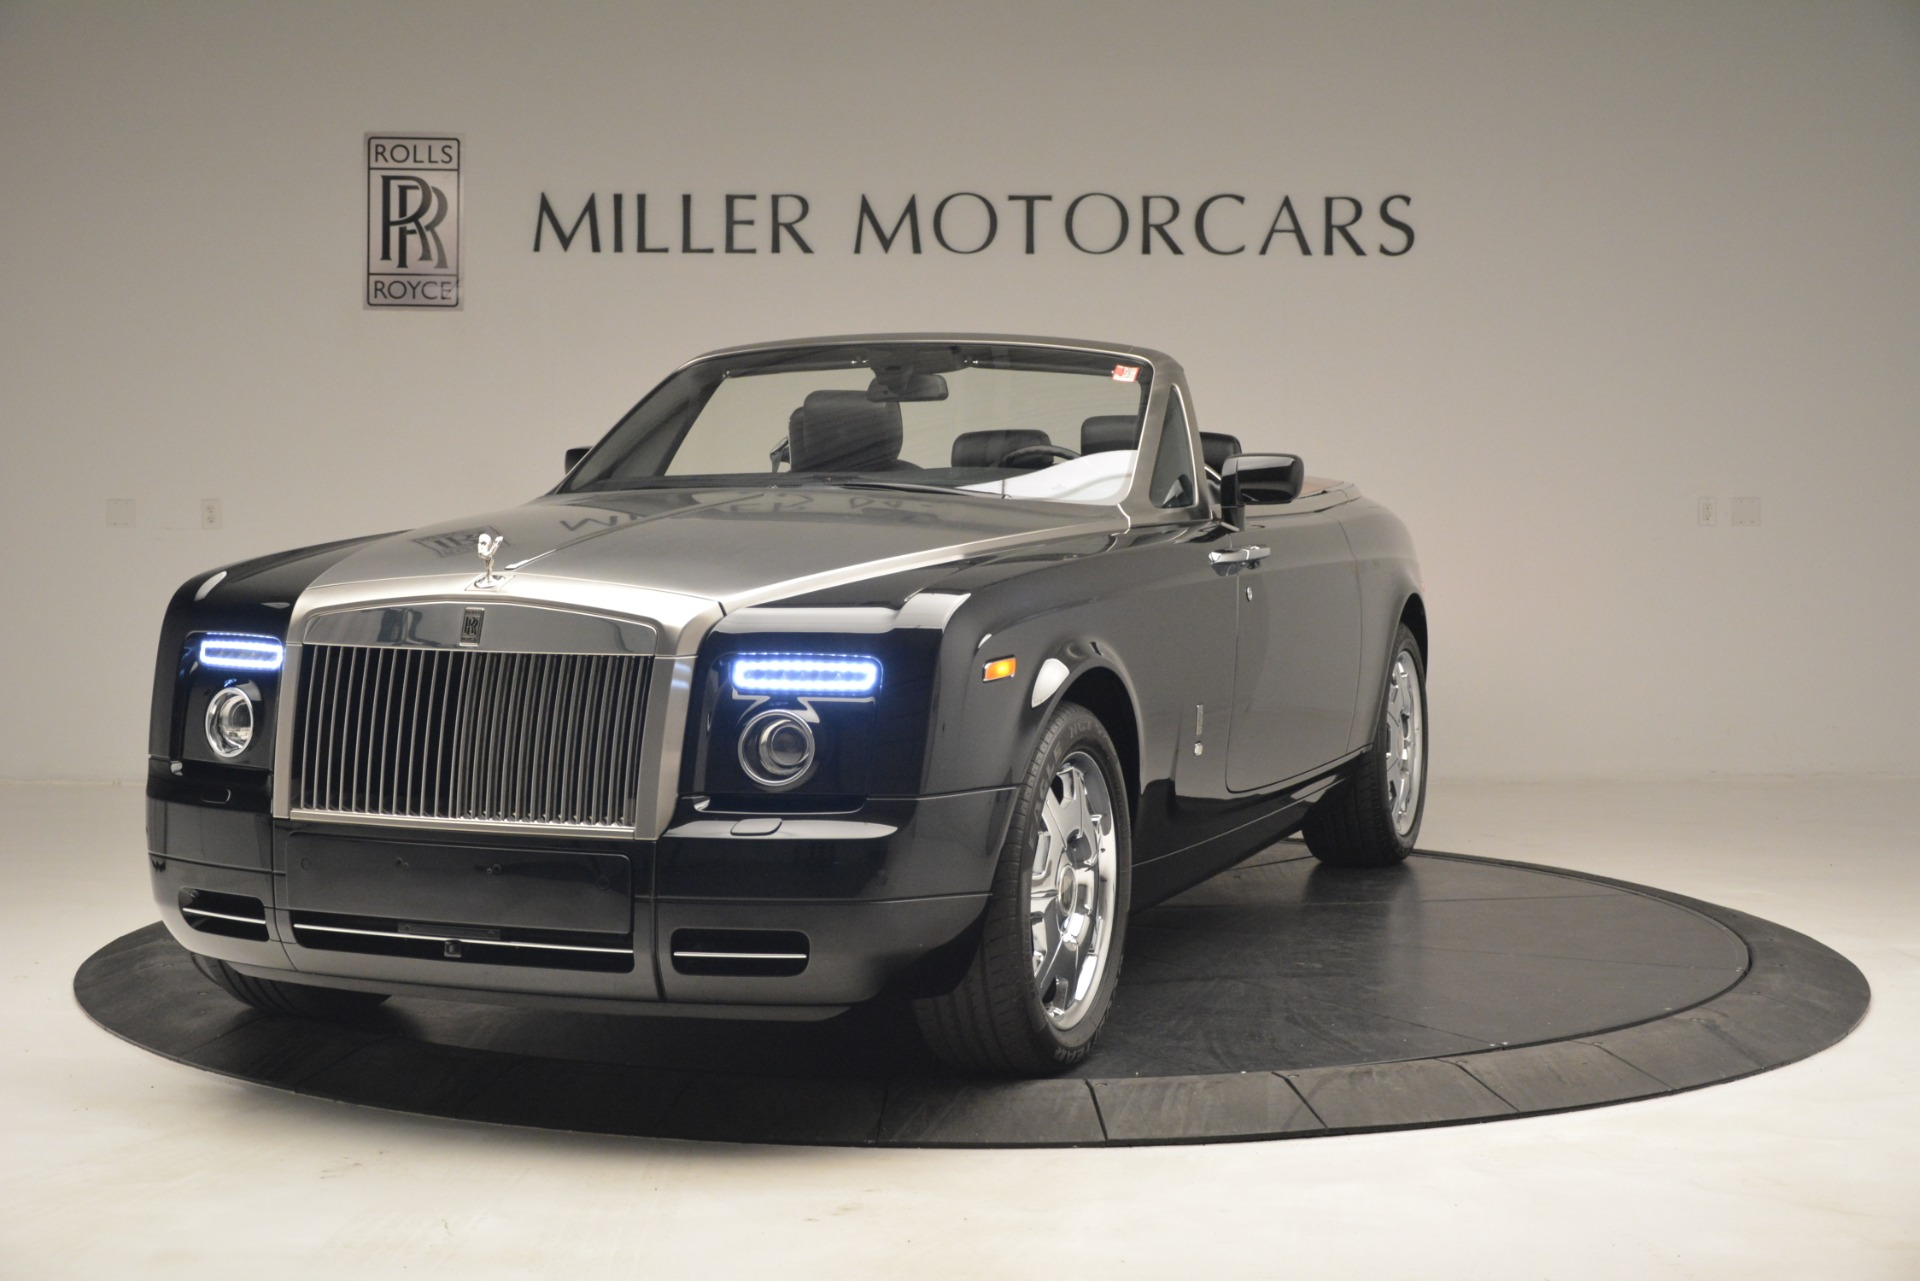 Used 2008 Rolls-Royce Phantom Drophead Coupe for sale Sold at Bentley Greenwich in Greenwich CT 06830 1